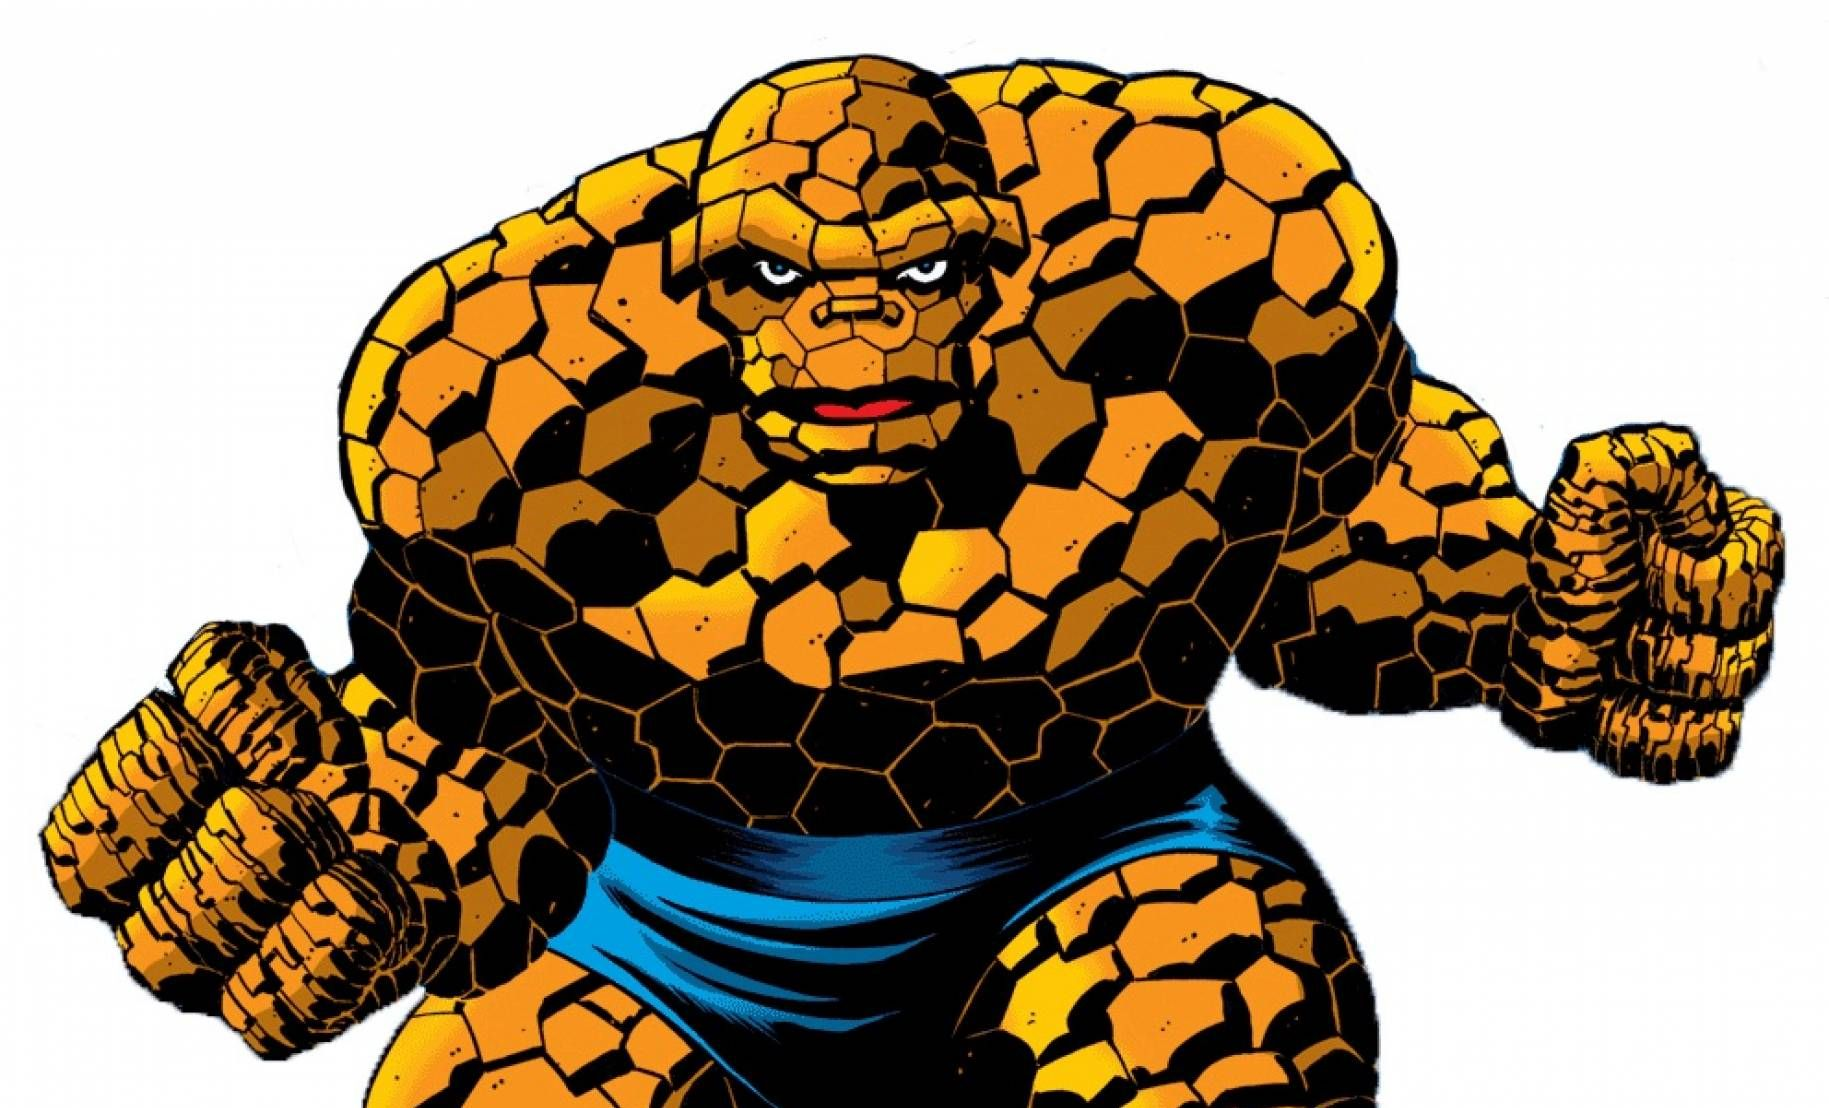 fox claim ownership of leaked thing image big comic page rh bigcomicpage com fantastic four clipart